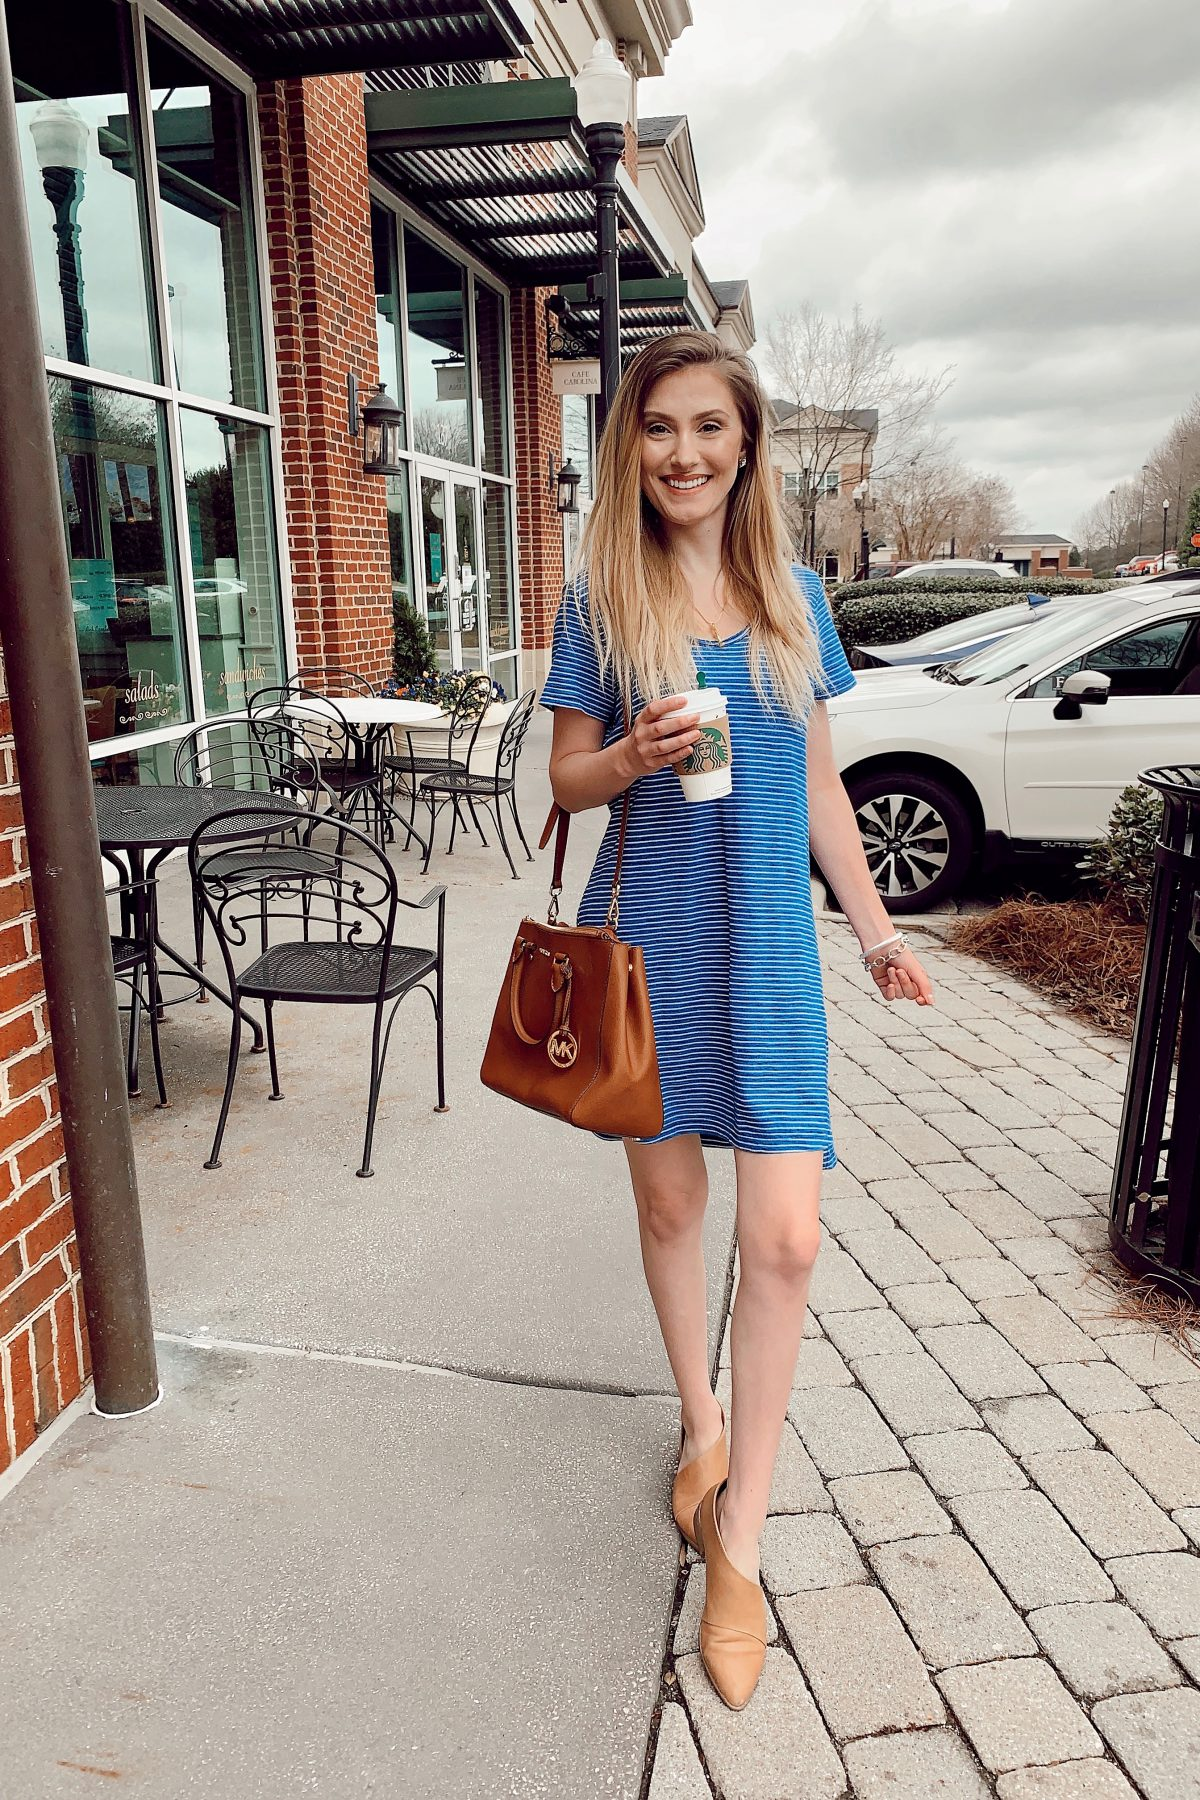 Simple T-Shirt Dress For Spring & Summer Casual outfit ideas by North Carolina fashion and lifestyle blogger Jessica Linn